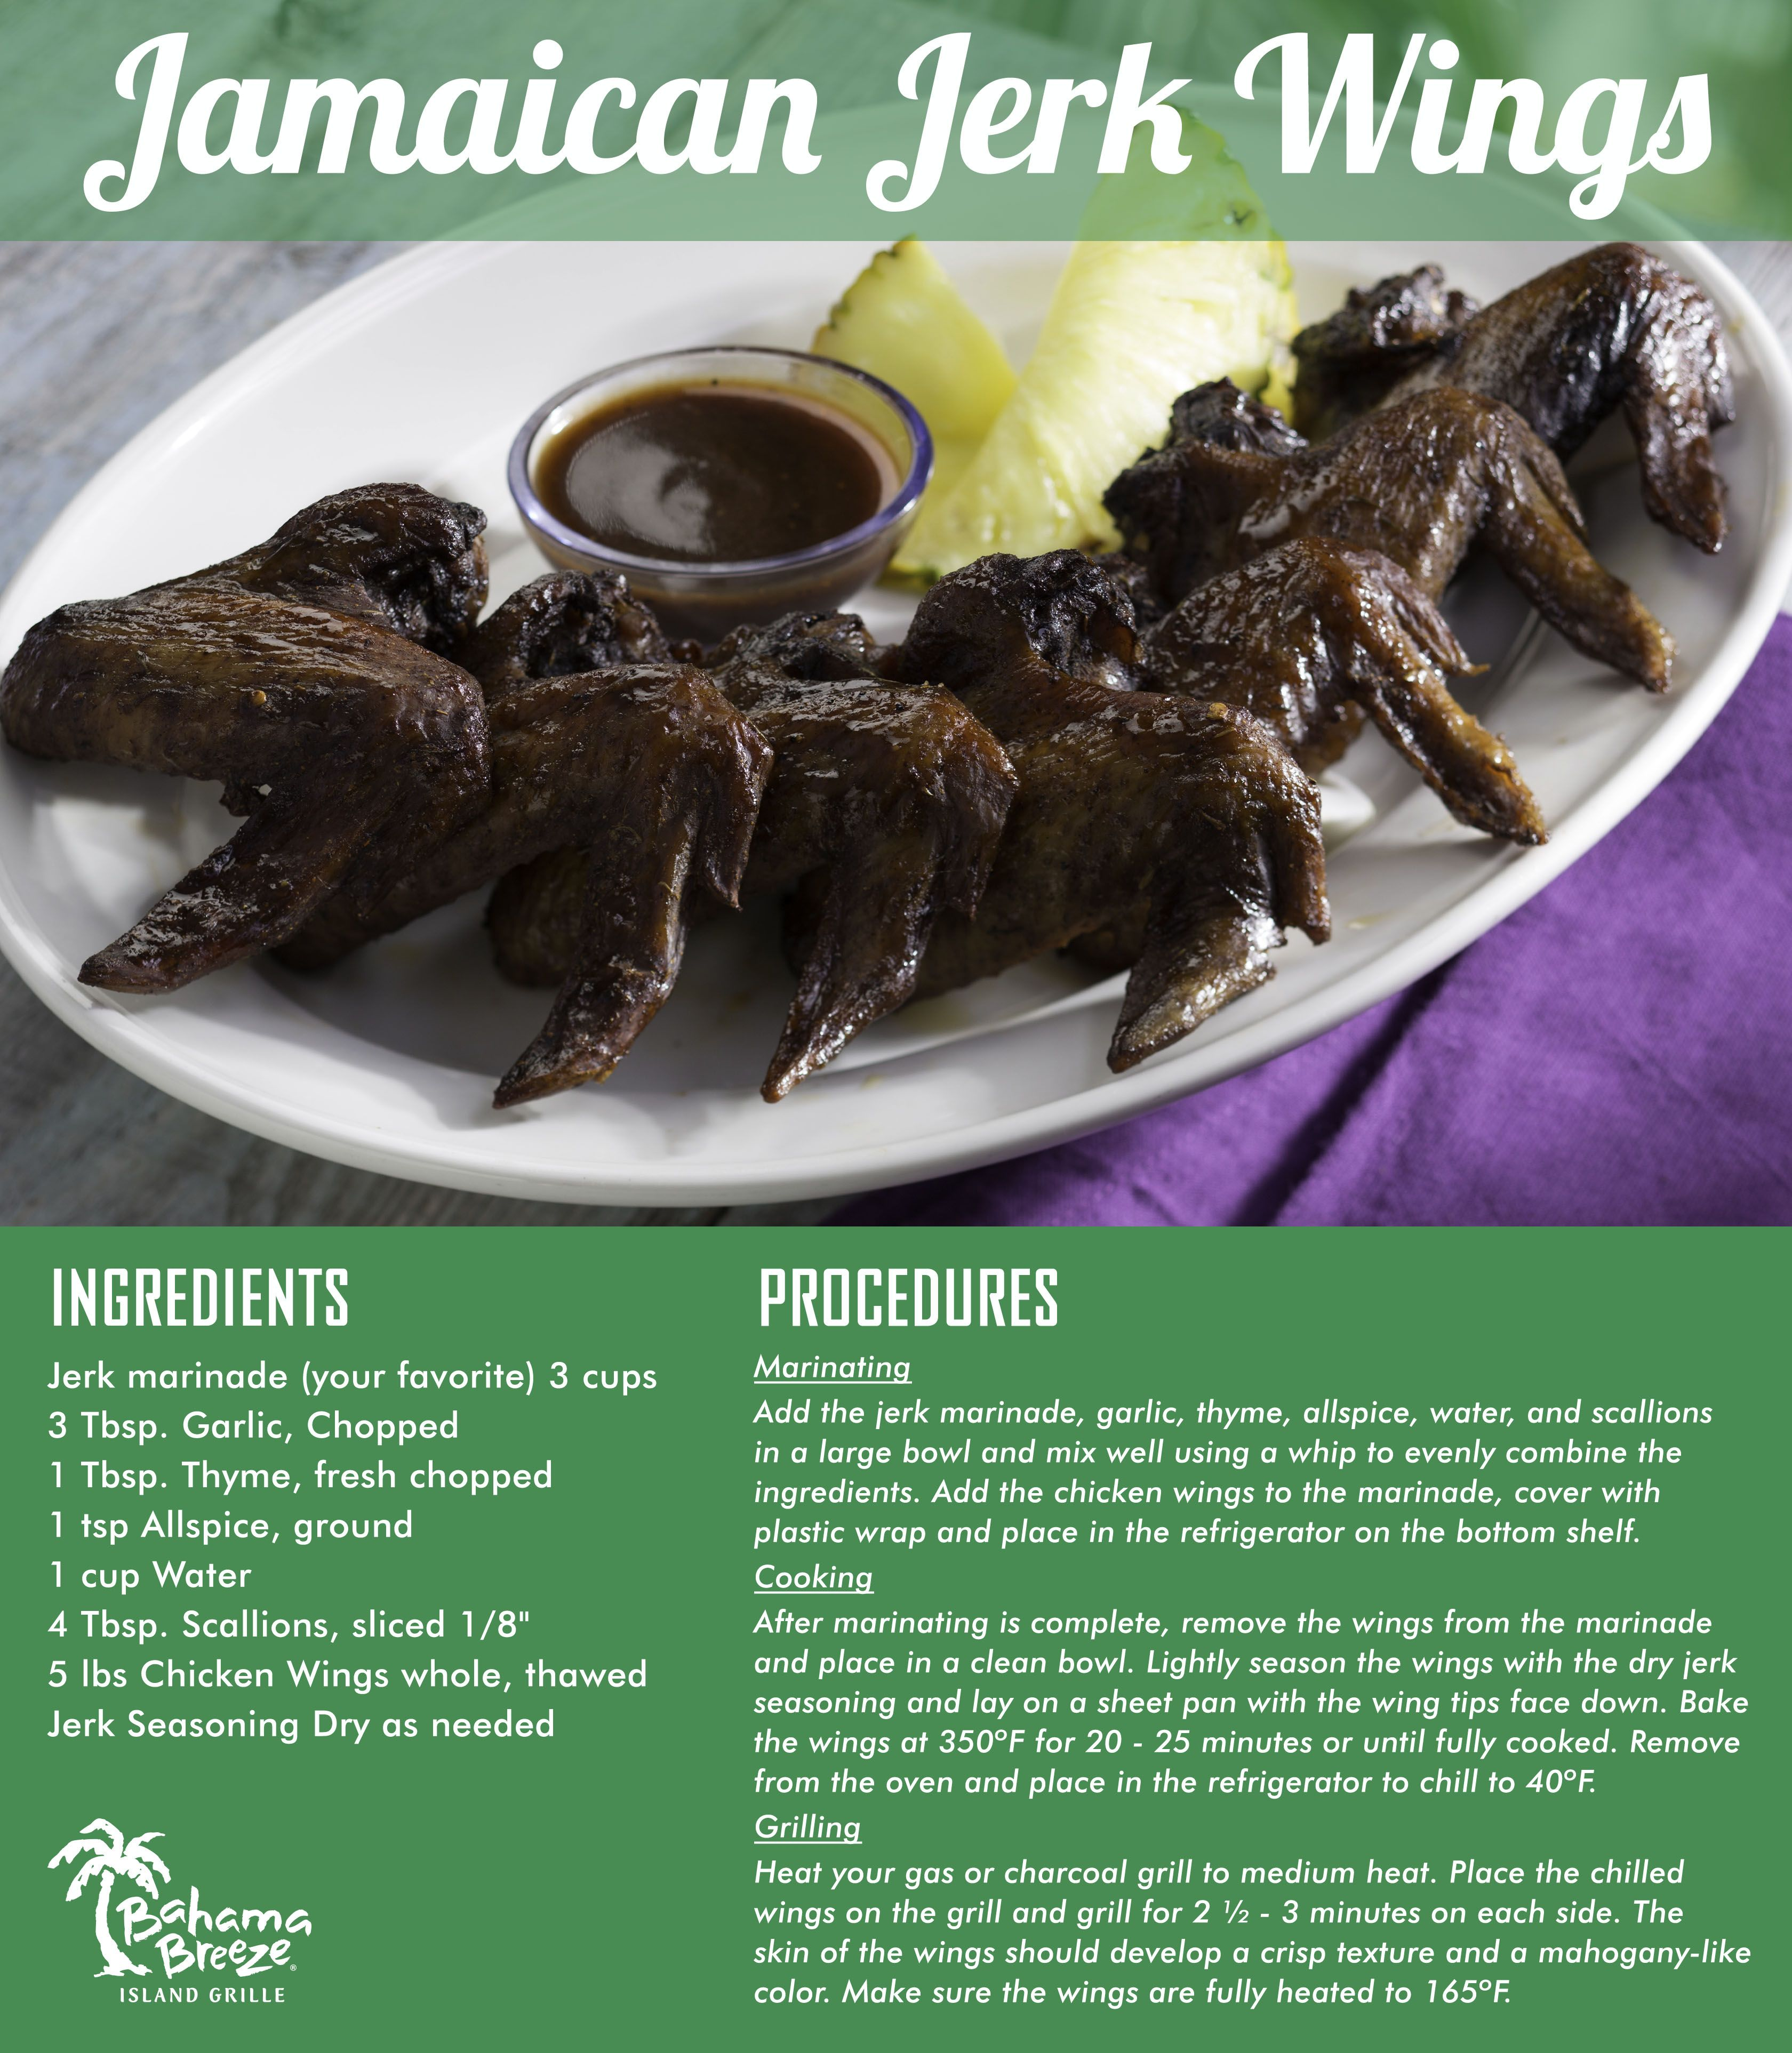 Bahama Breeze Jamaican Jerk Chicken Wings This Recipe Will Become A Grilling Staple Jerk Chicken Wings Recipes Jamaican Dishes